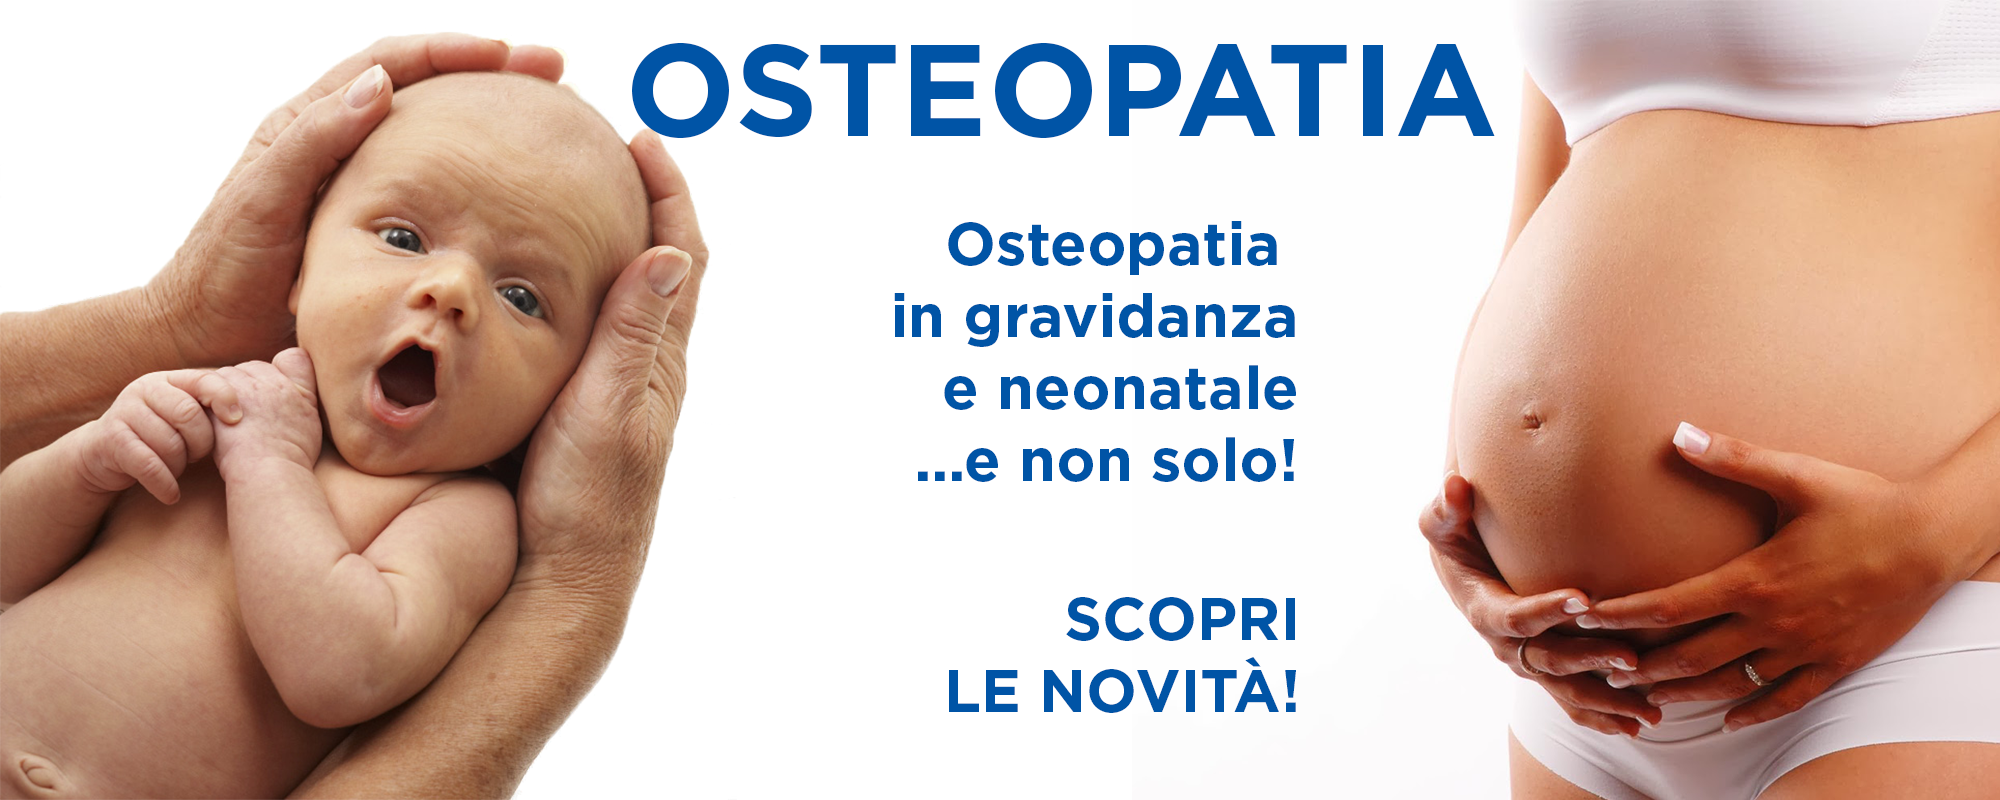 slider-OsteopatiaOK1